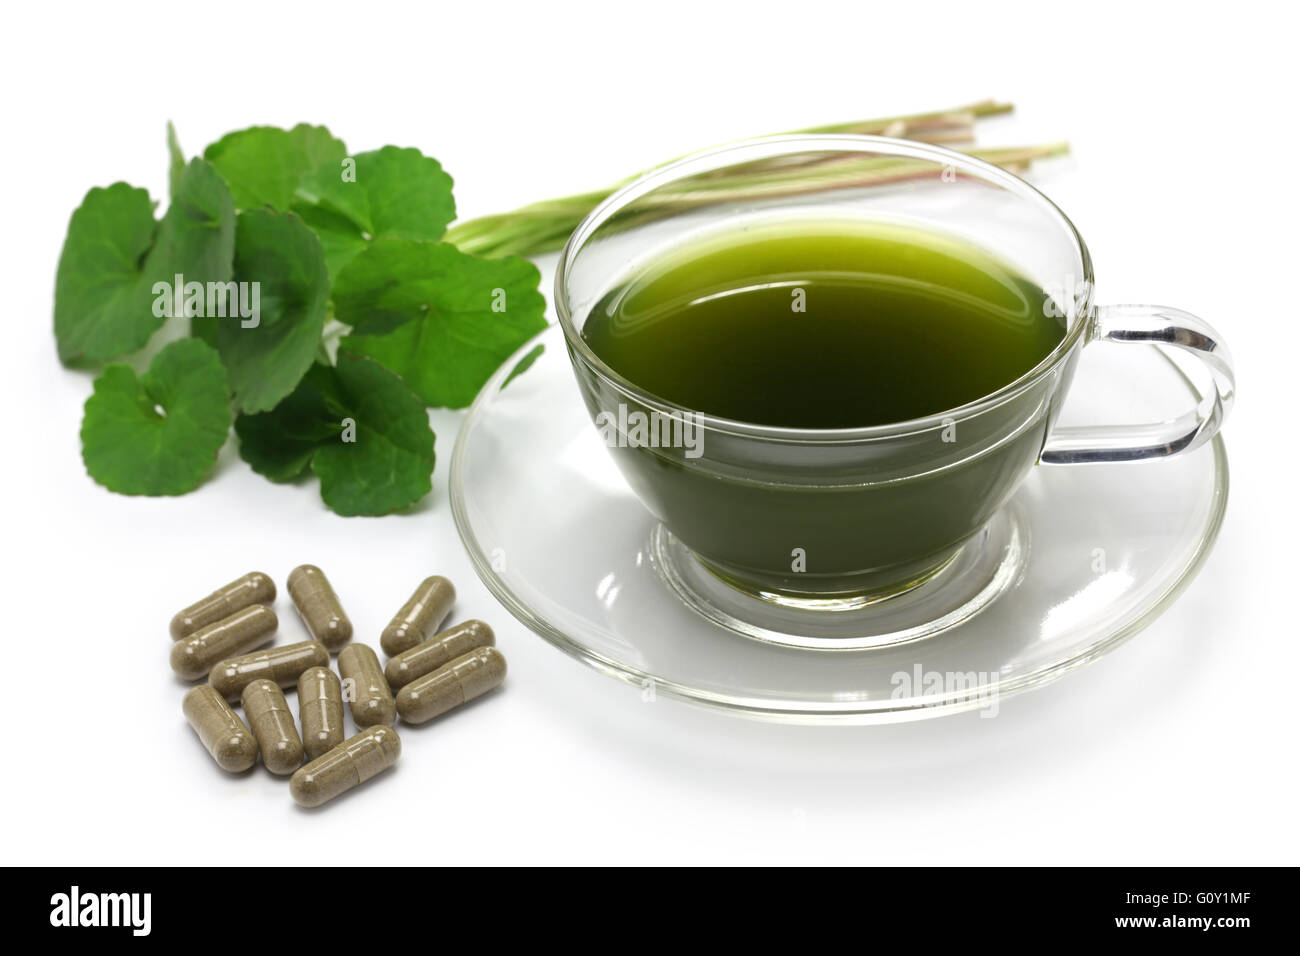 gotu kola, asiatic pennywort, centella asiatica, ayurveda herbal drink supplement - Stock Image